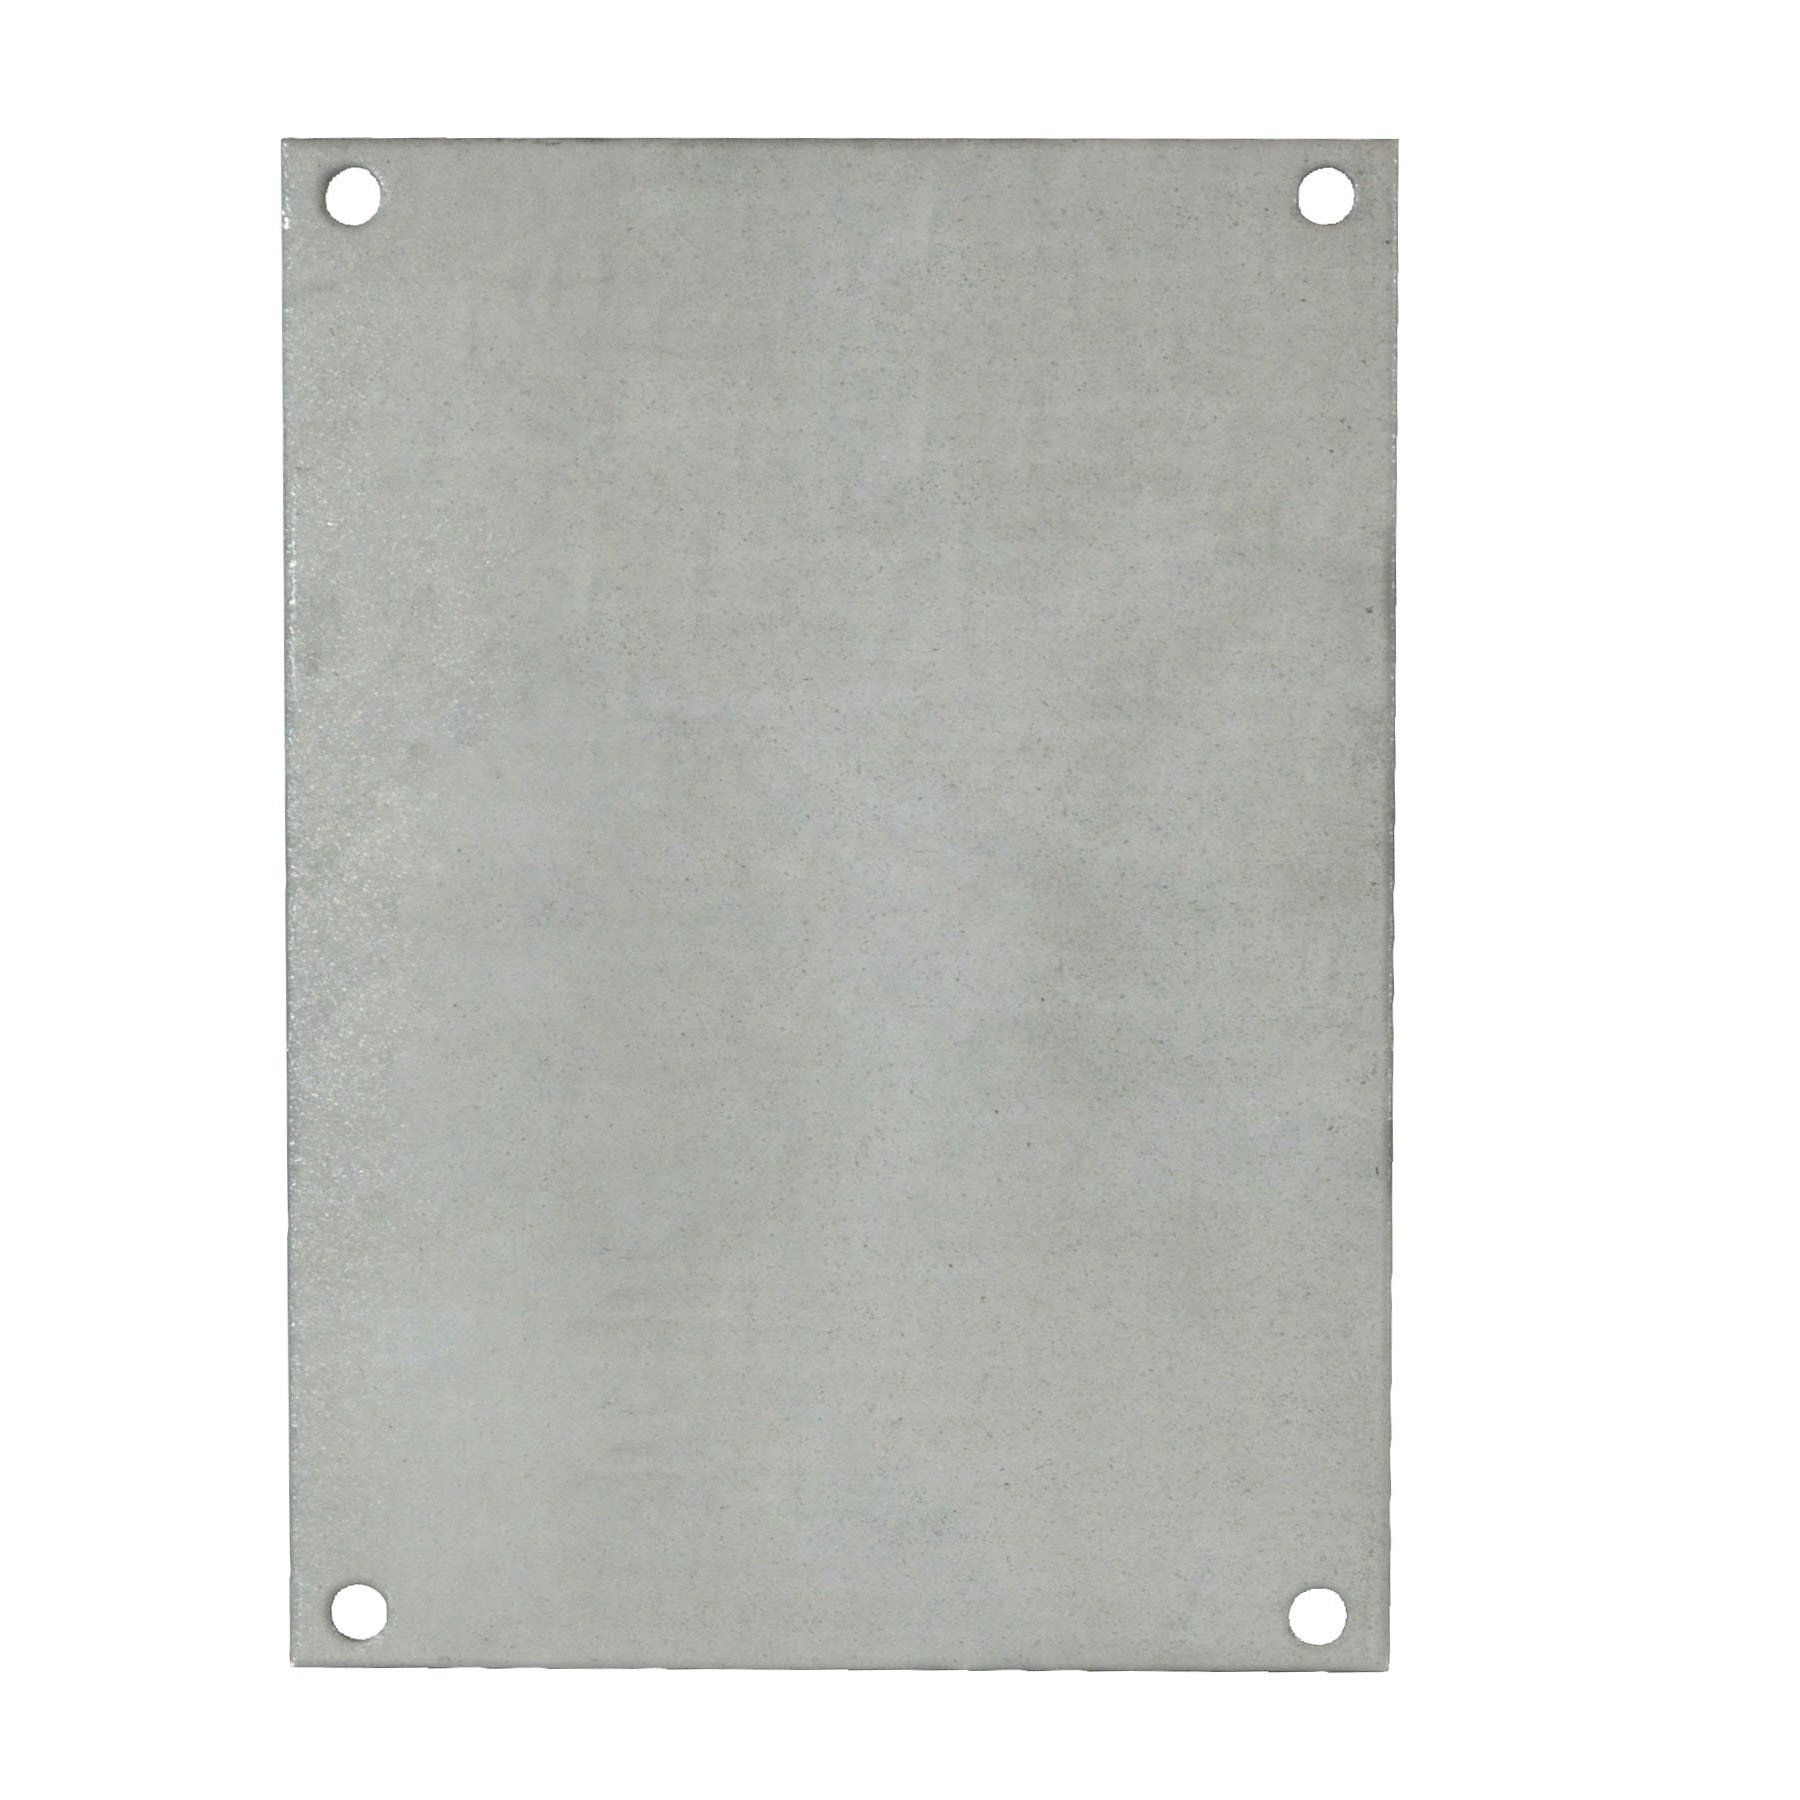 "Galvanized Back Panel for 18"" x 16"" Enclosures"